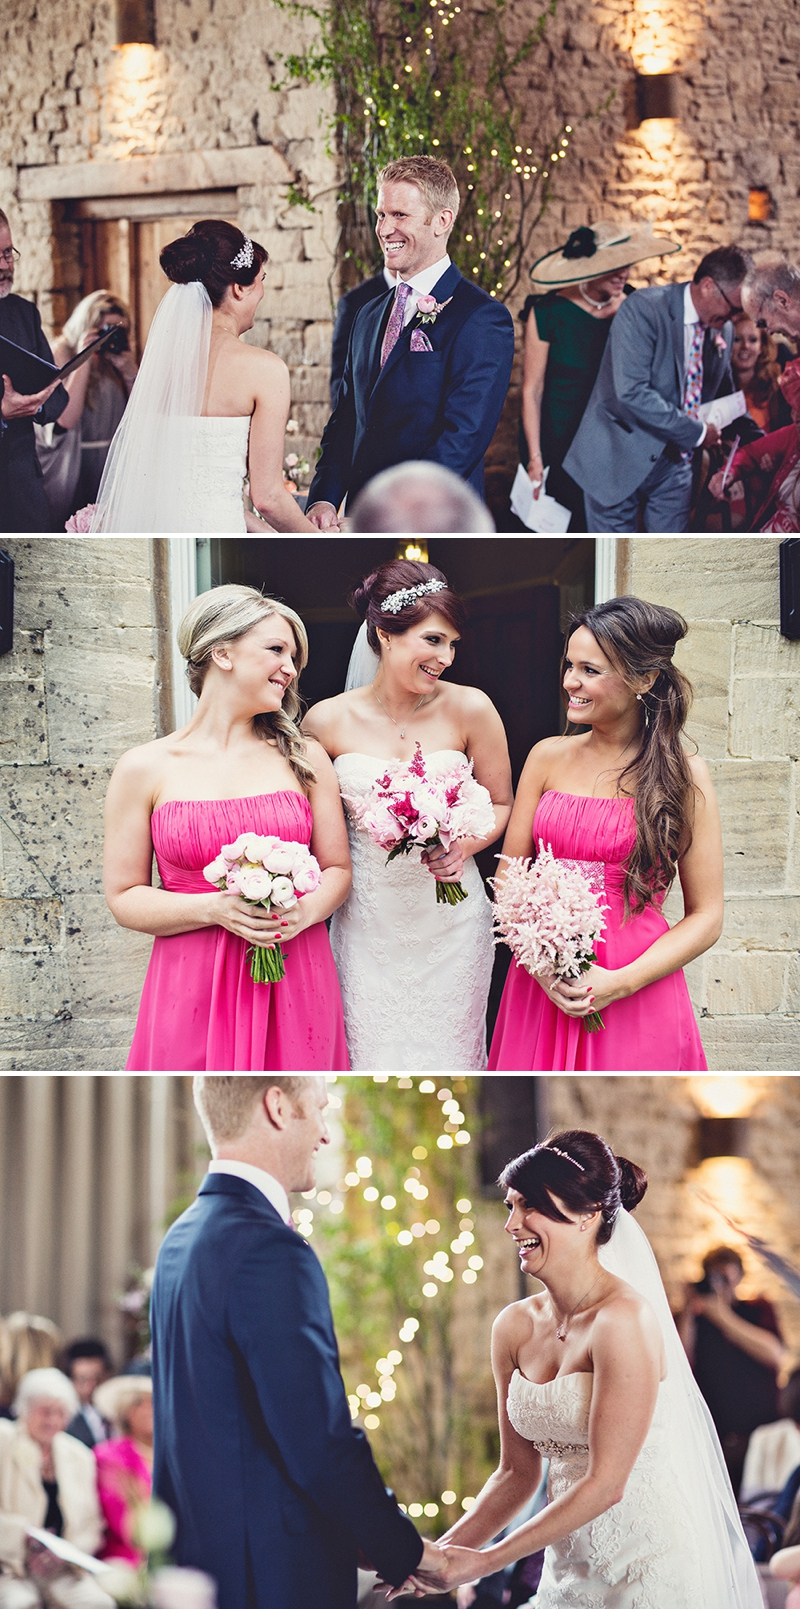 A pretty wedding at Cripps Barn by Anna Clarke photography with a lace pronovias dress_0309